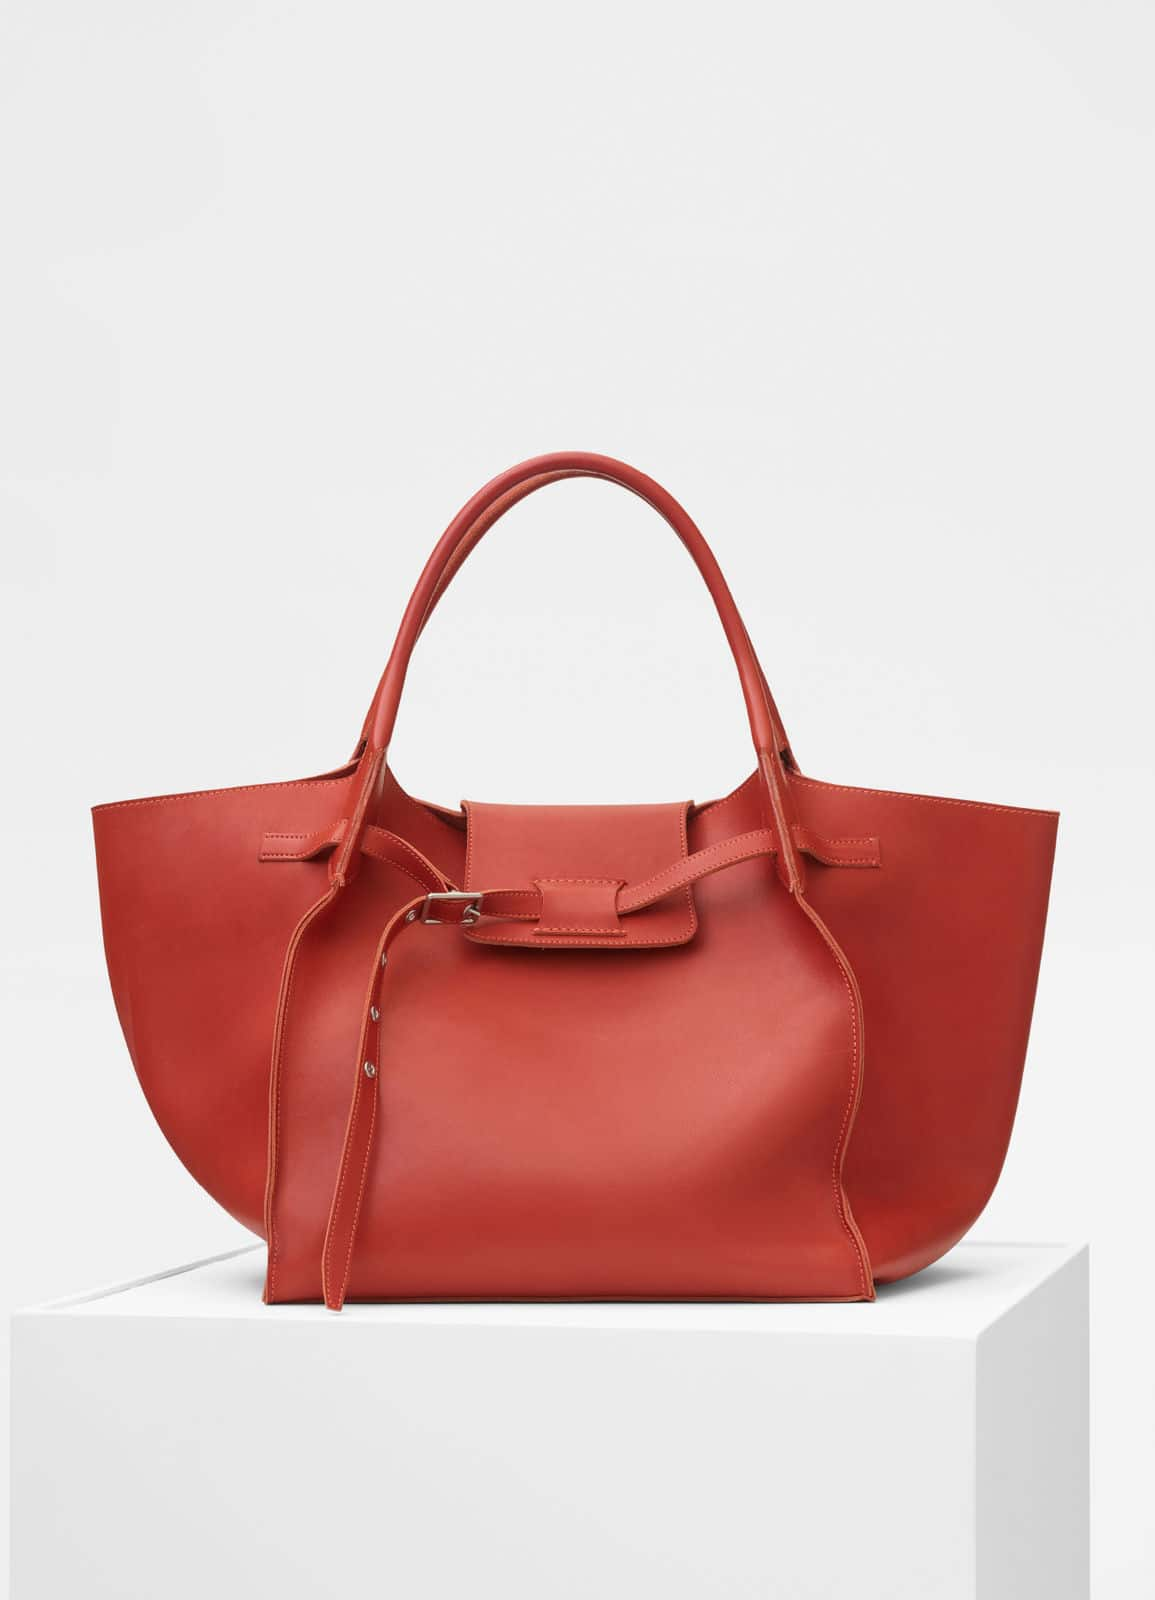 3408bb5b91 Celine Spring 2018 Bag Collection Featuring the Big Bucket